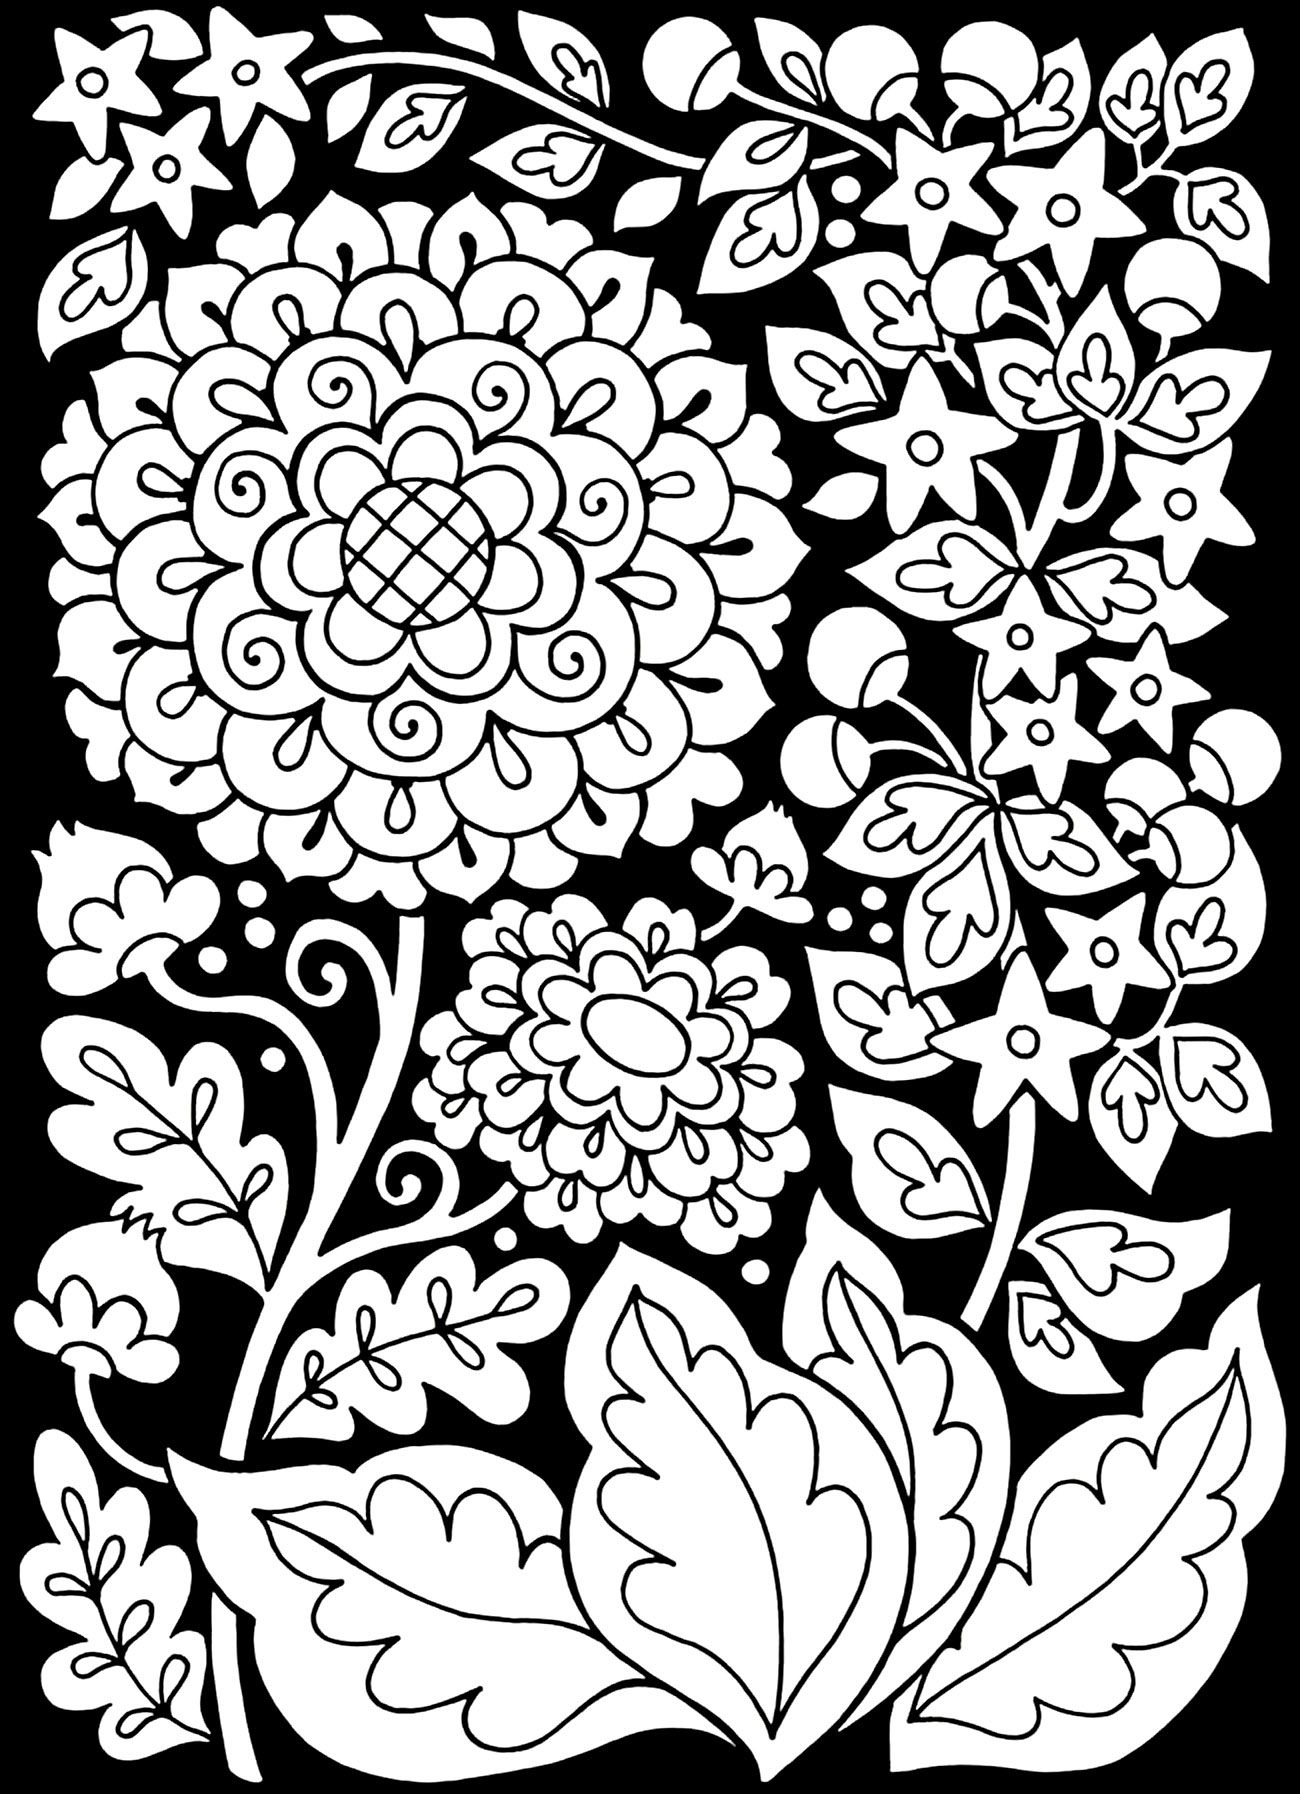 Flowers And Vegetation Coloring Pages For Adults Coloring Books Coloring Pages Free Coloring Pages